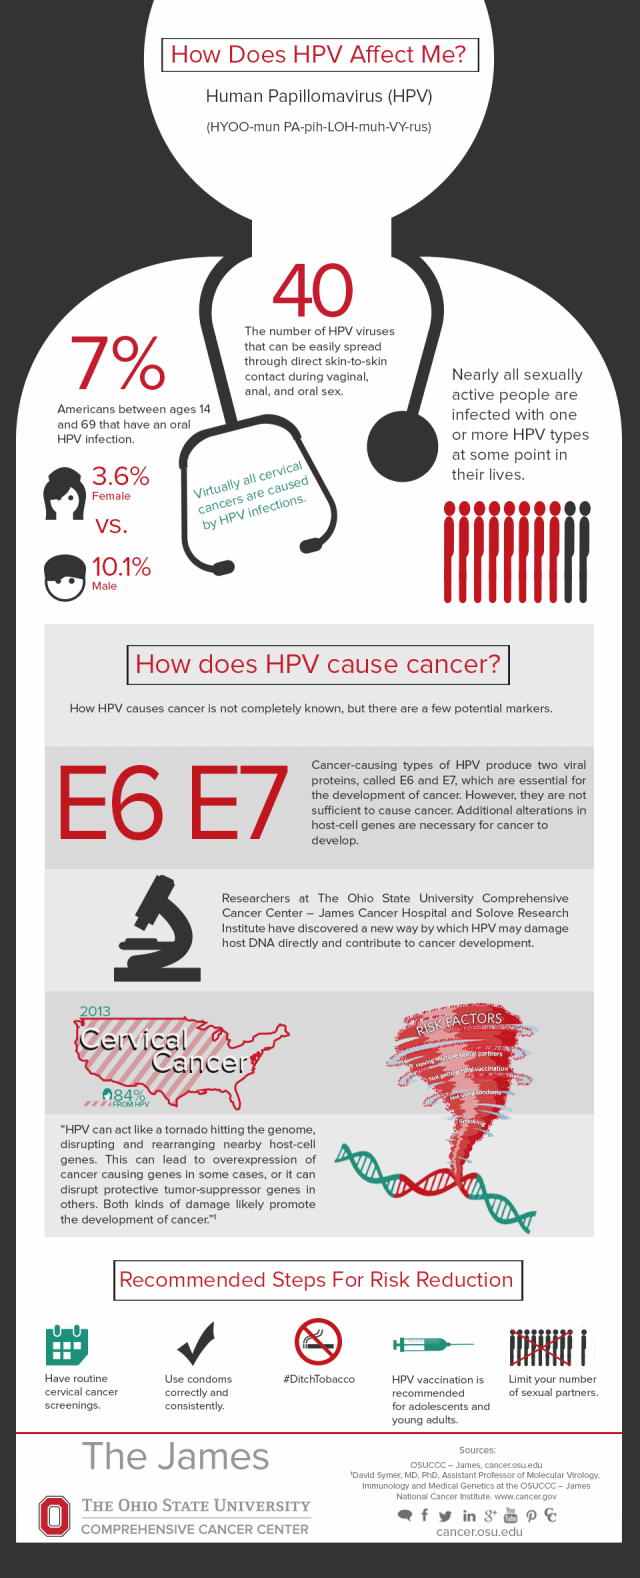 SM_OSUCCC-HPV-Infographic-March-10th-2014